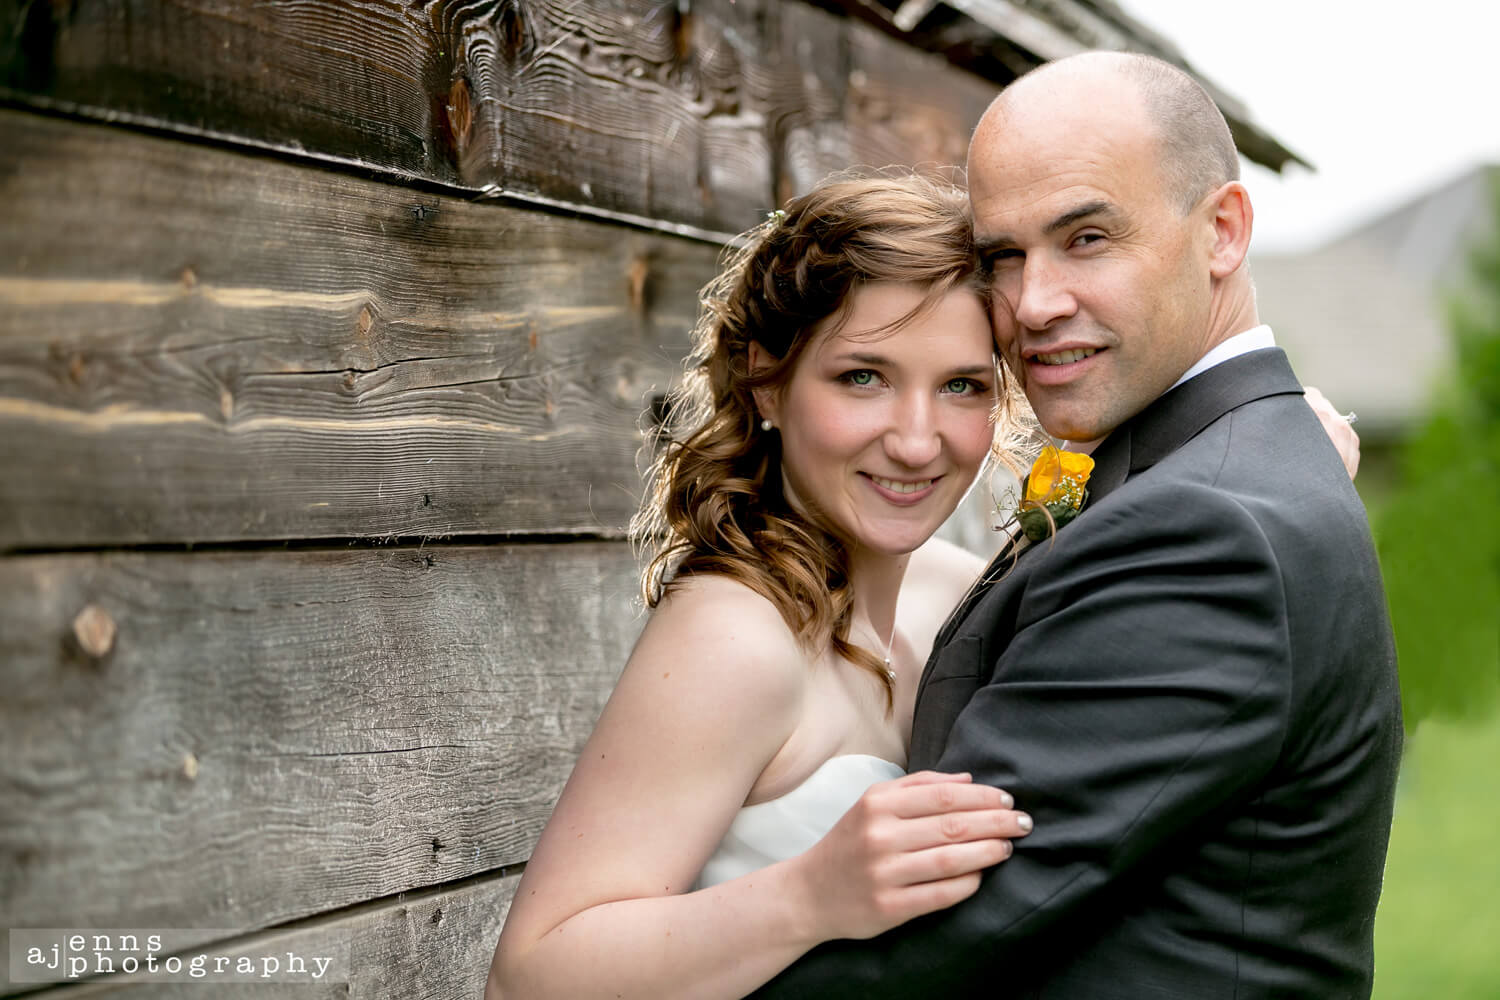 The beautiful bride and groom leaning against a wooden wall